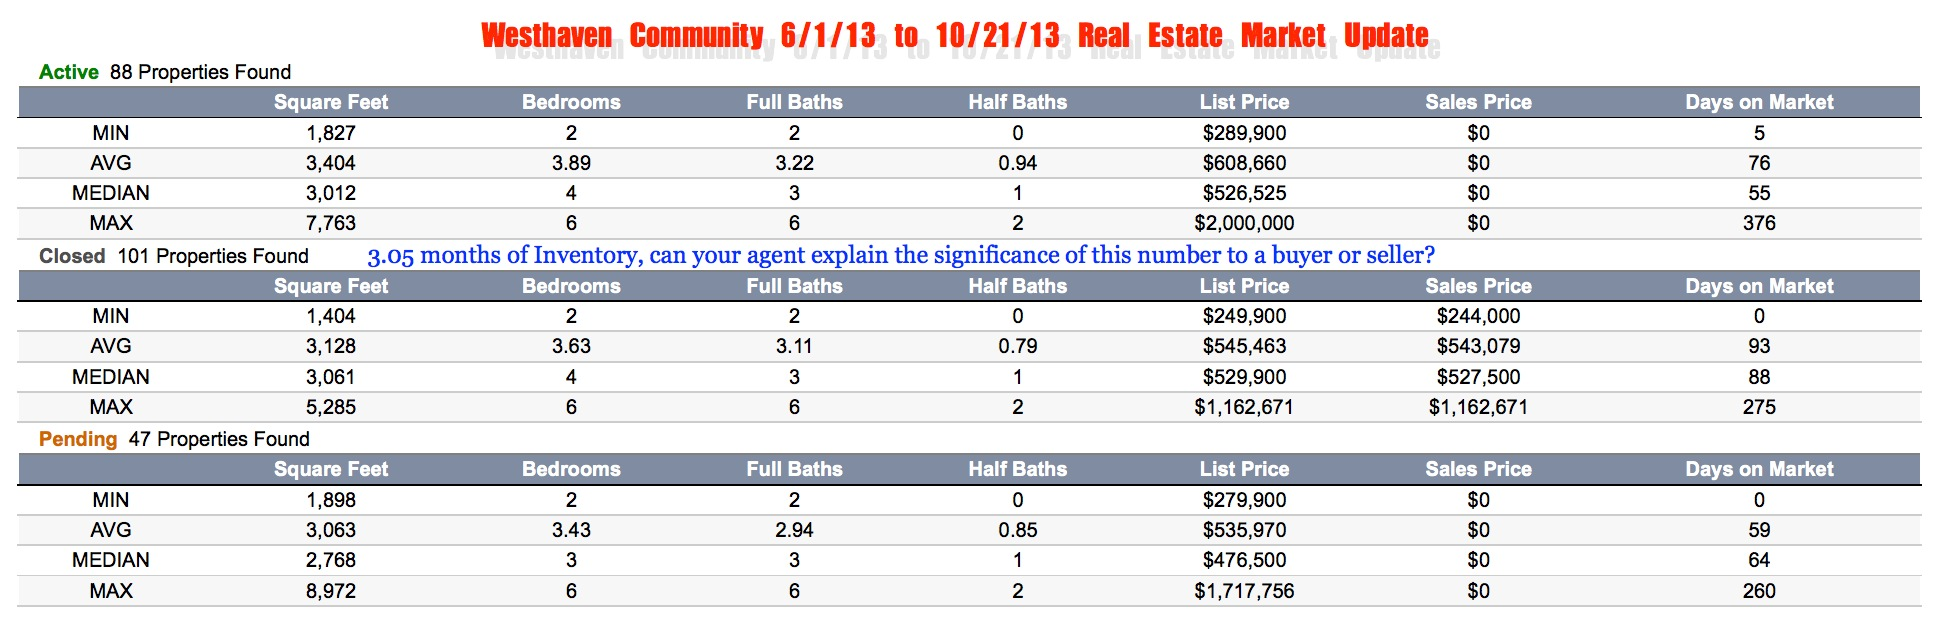 Westhaven COmmunity Real estate update